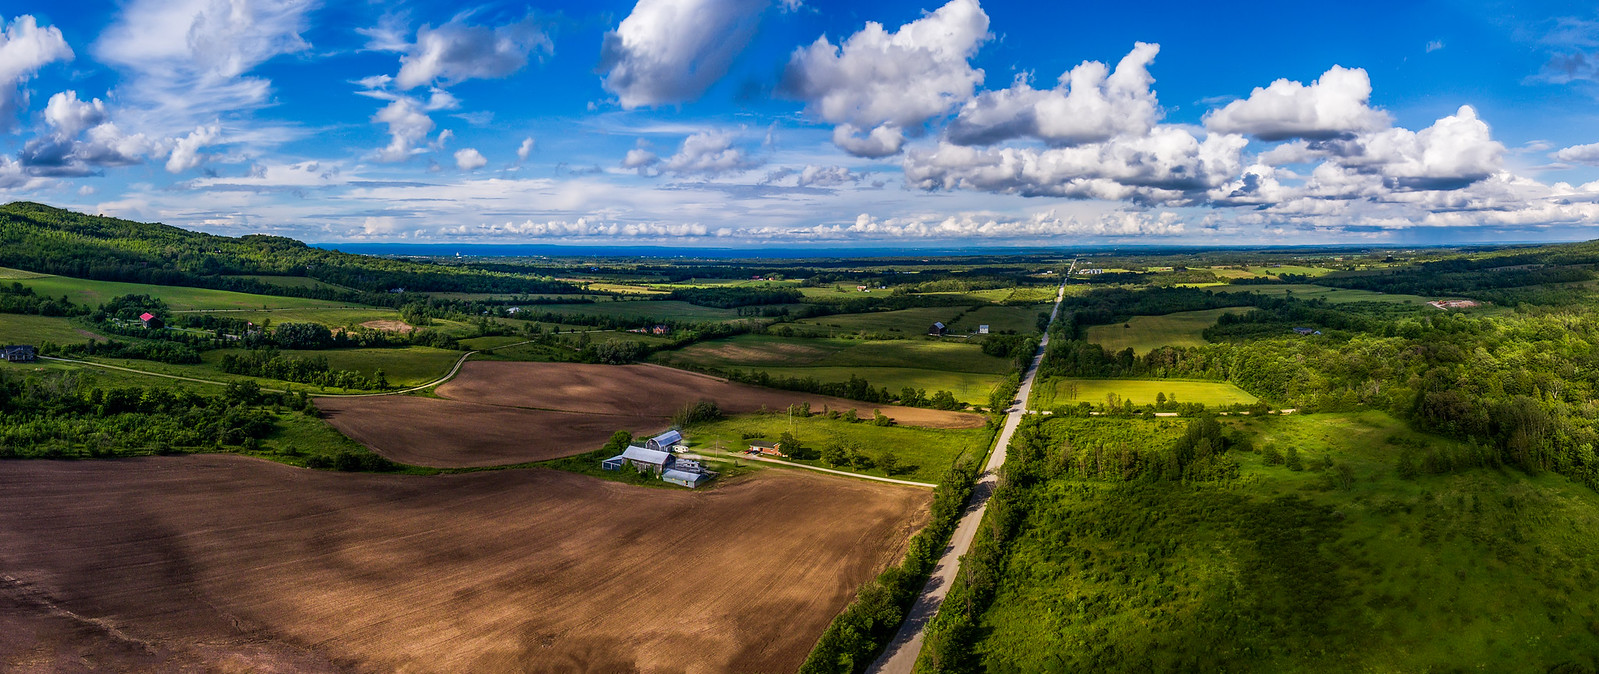 Ontario Collingwood Side Road 33 Aerial